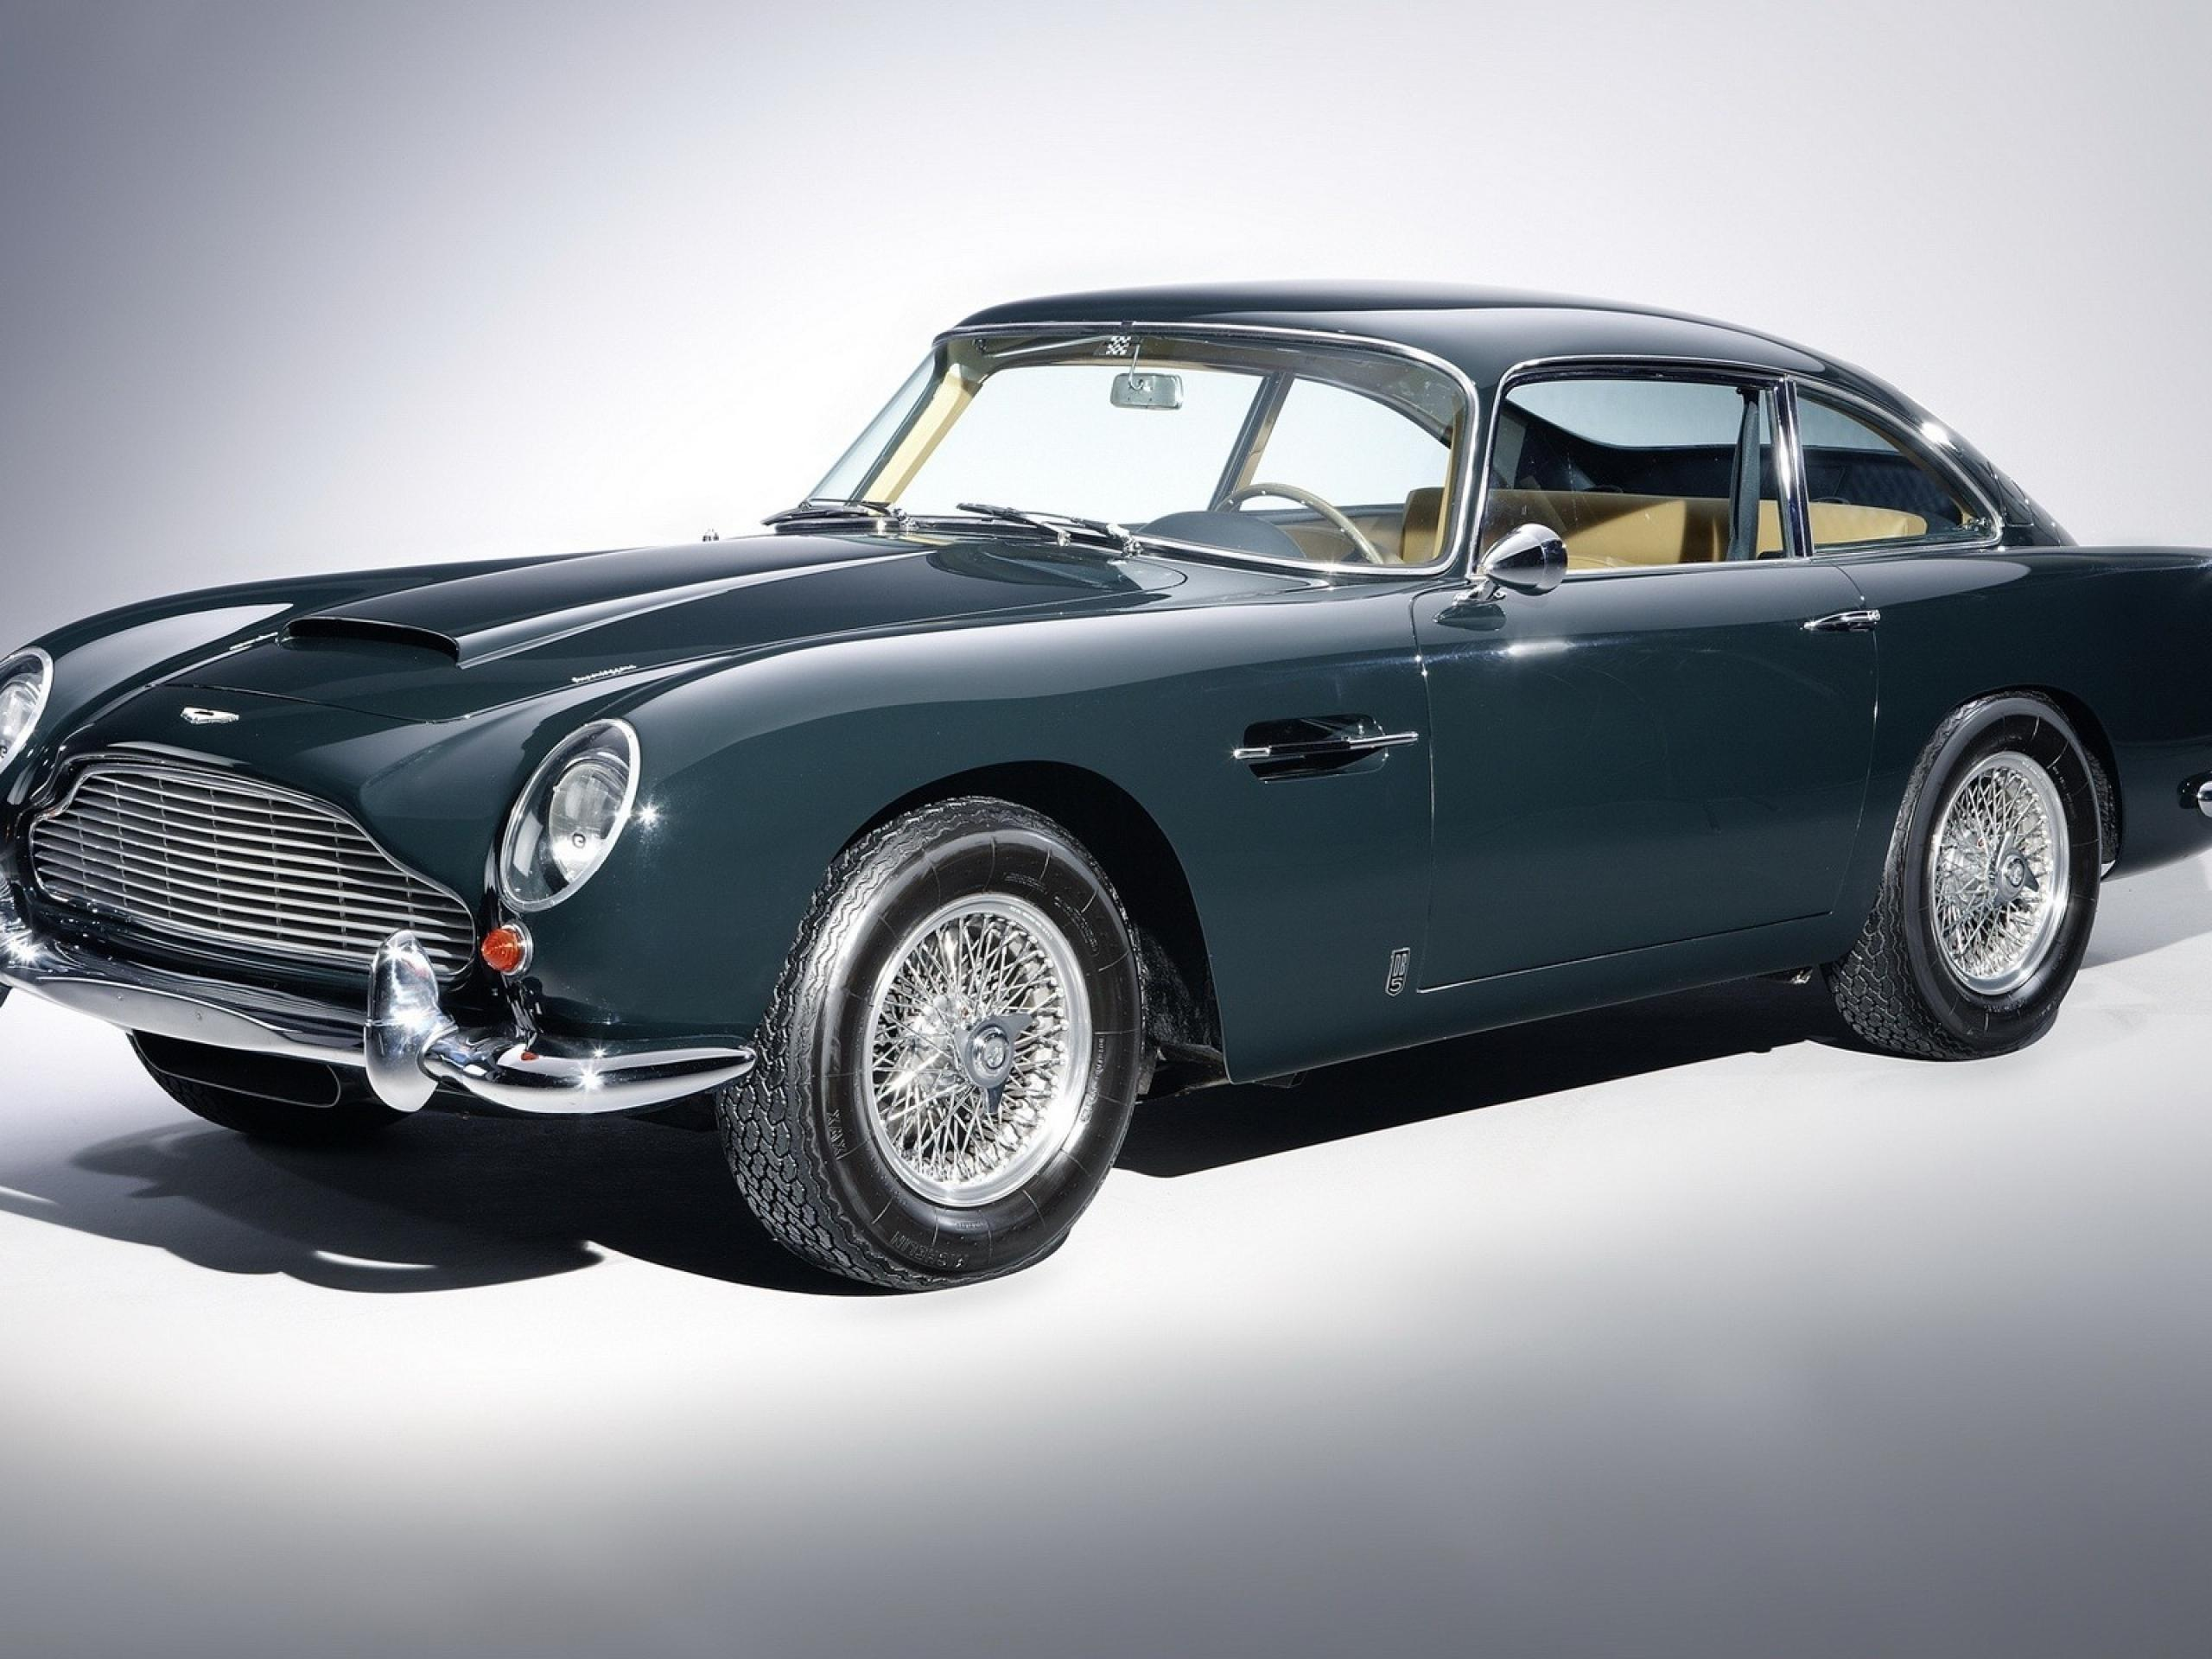 Use And Share These Wallpaper Images Of The Aston Martin